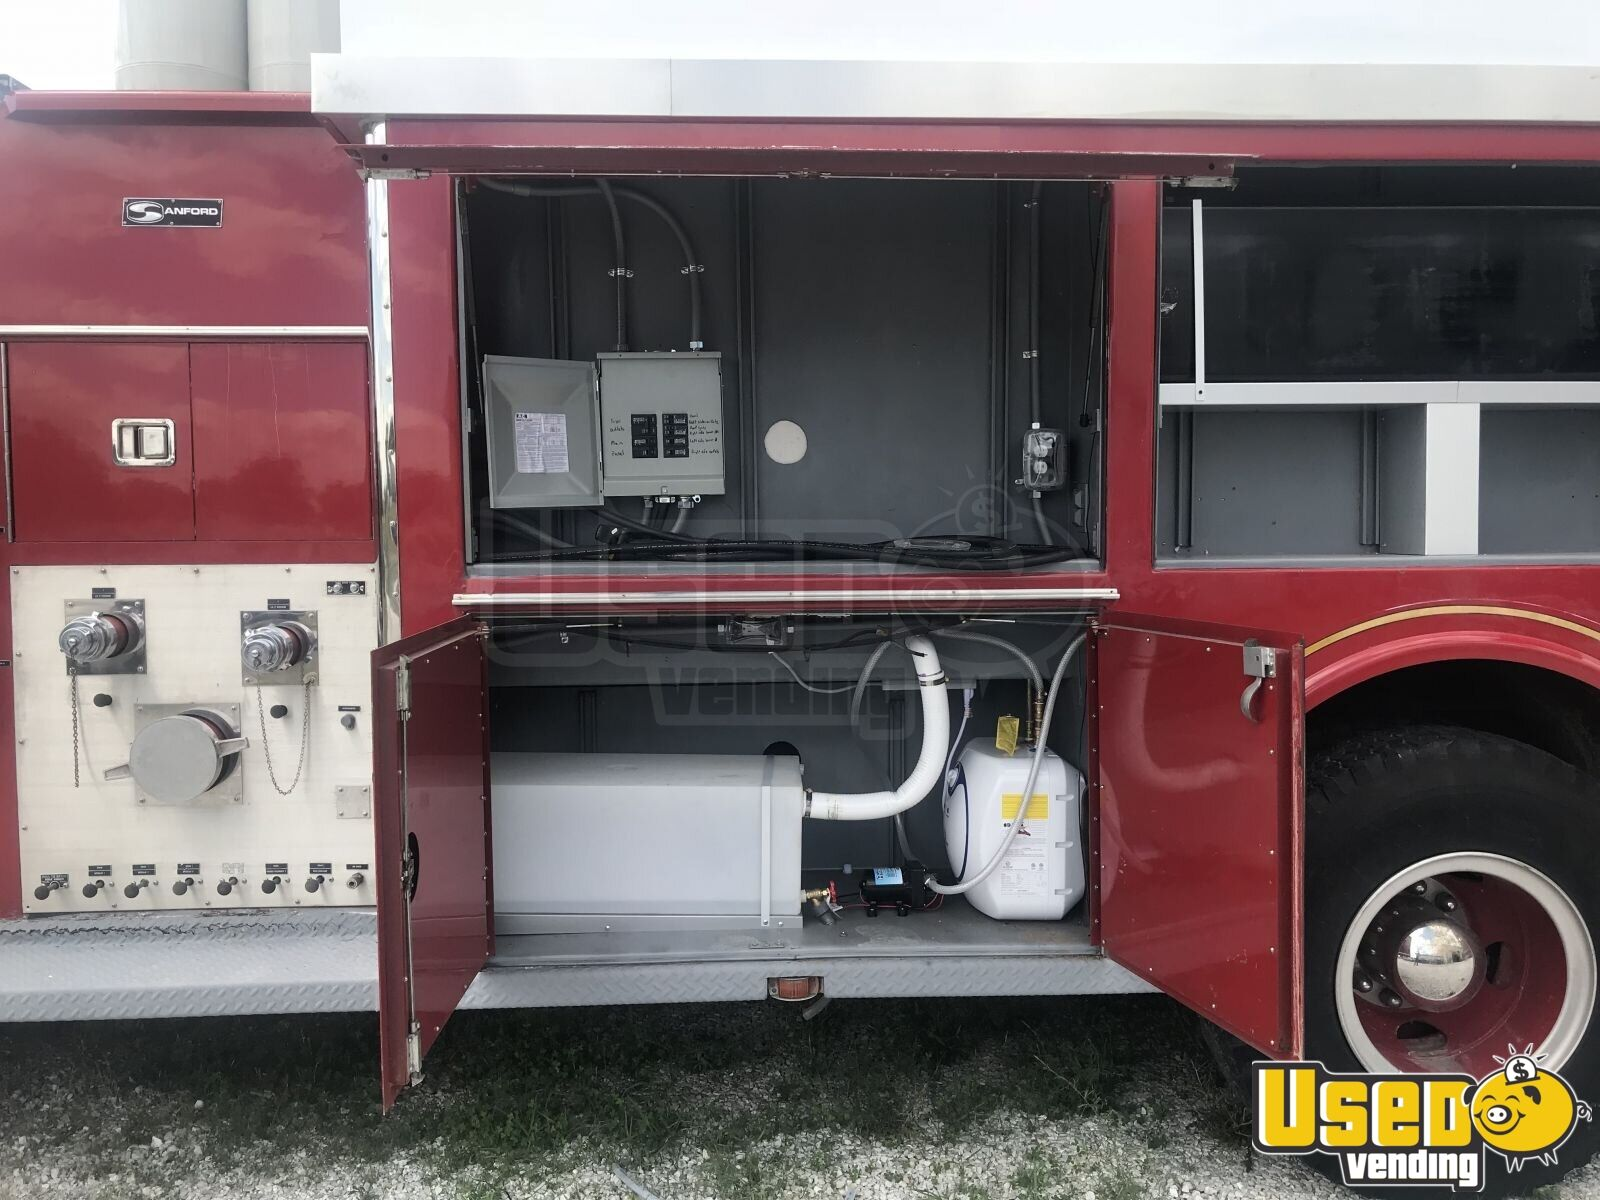 1995 All-purpose Food Truck 21 Missouri Diesel Engine for Sale - 21